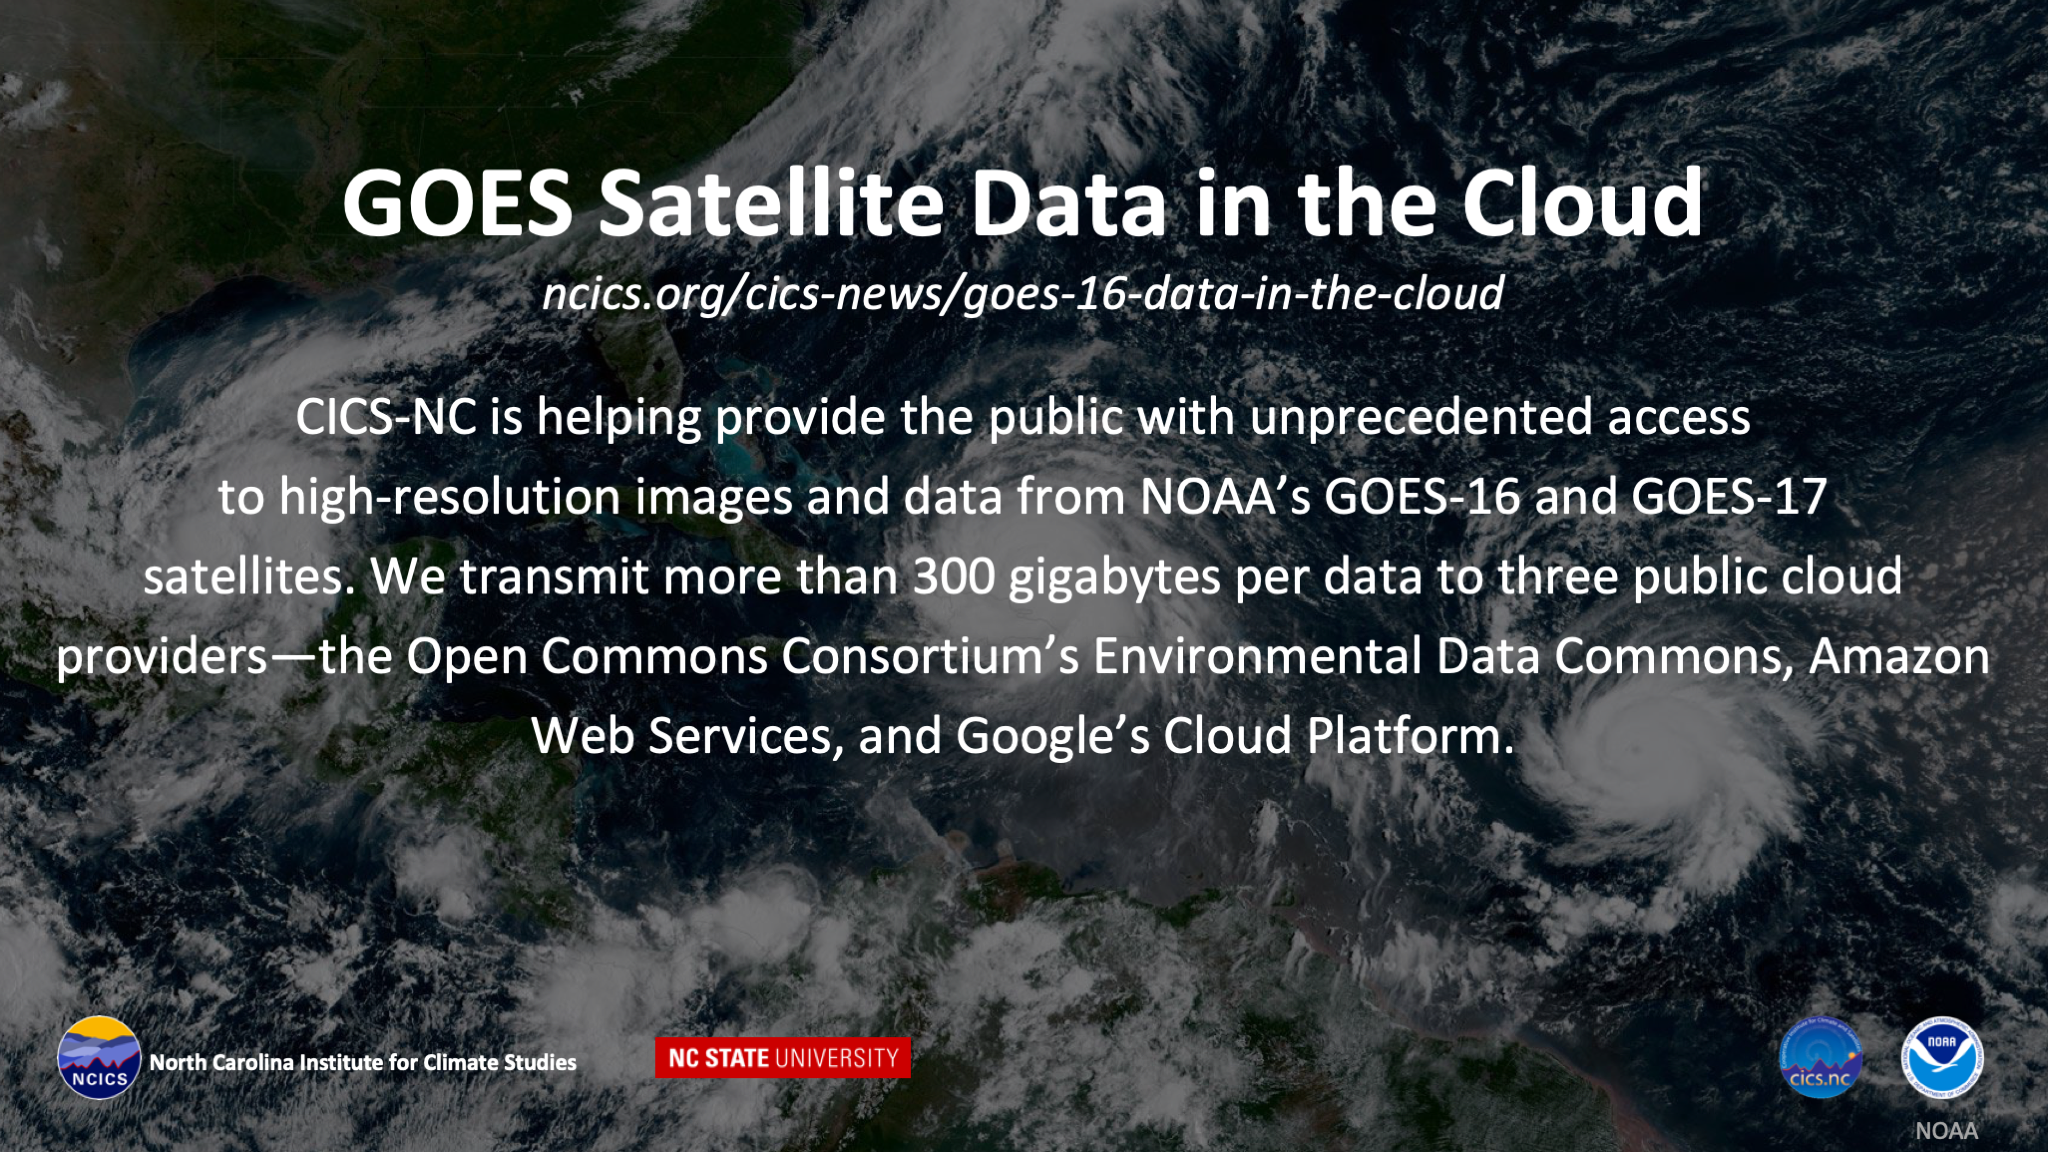 GOES Satellite Data in the Cloud